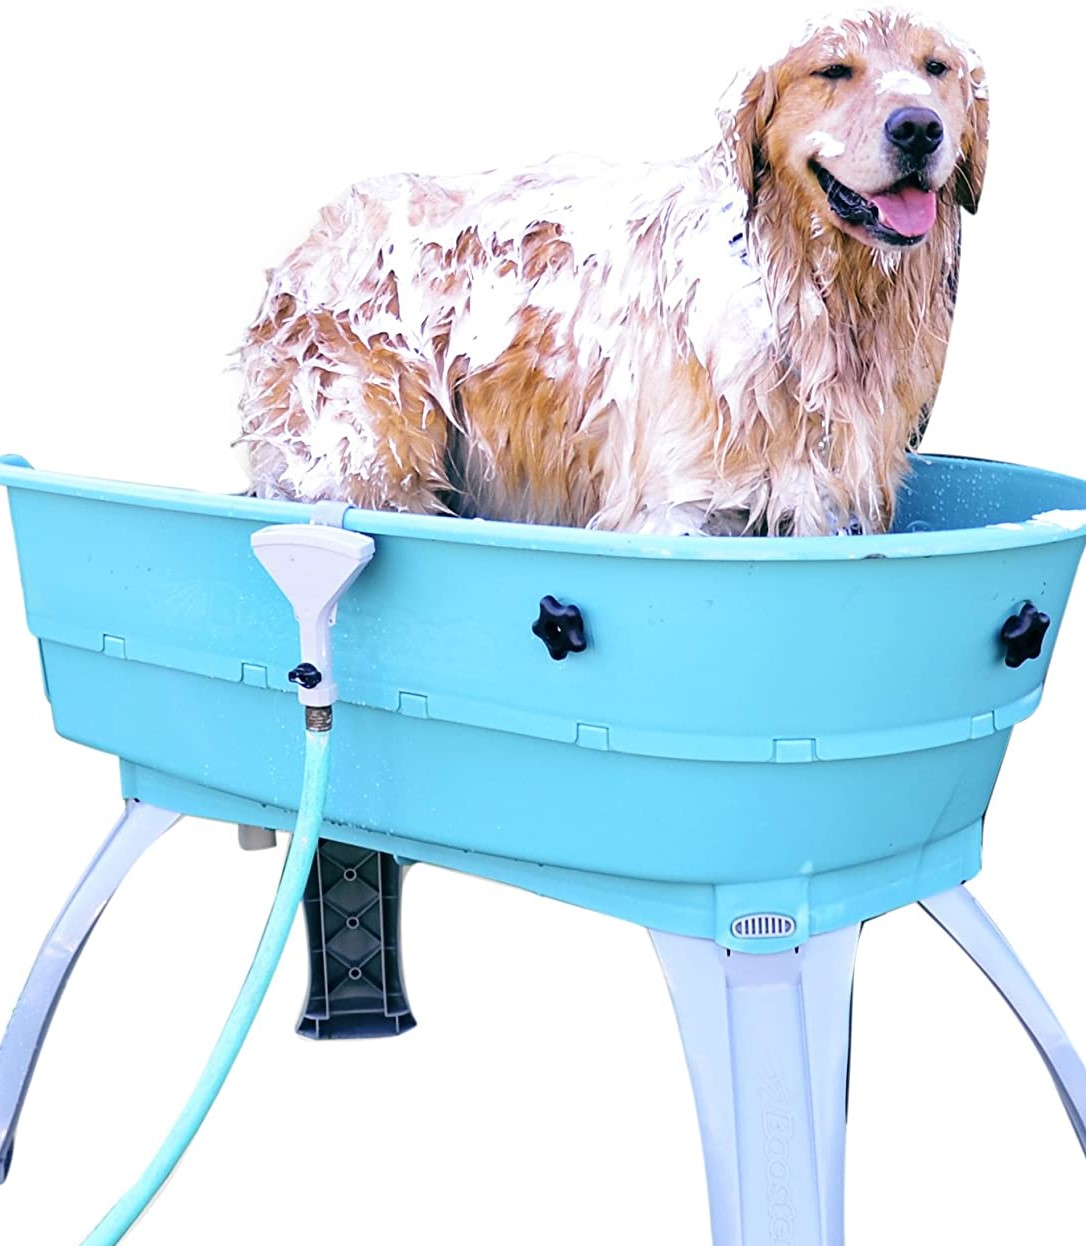 Booster Bath to wash off the sand from doggies day gallery image